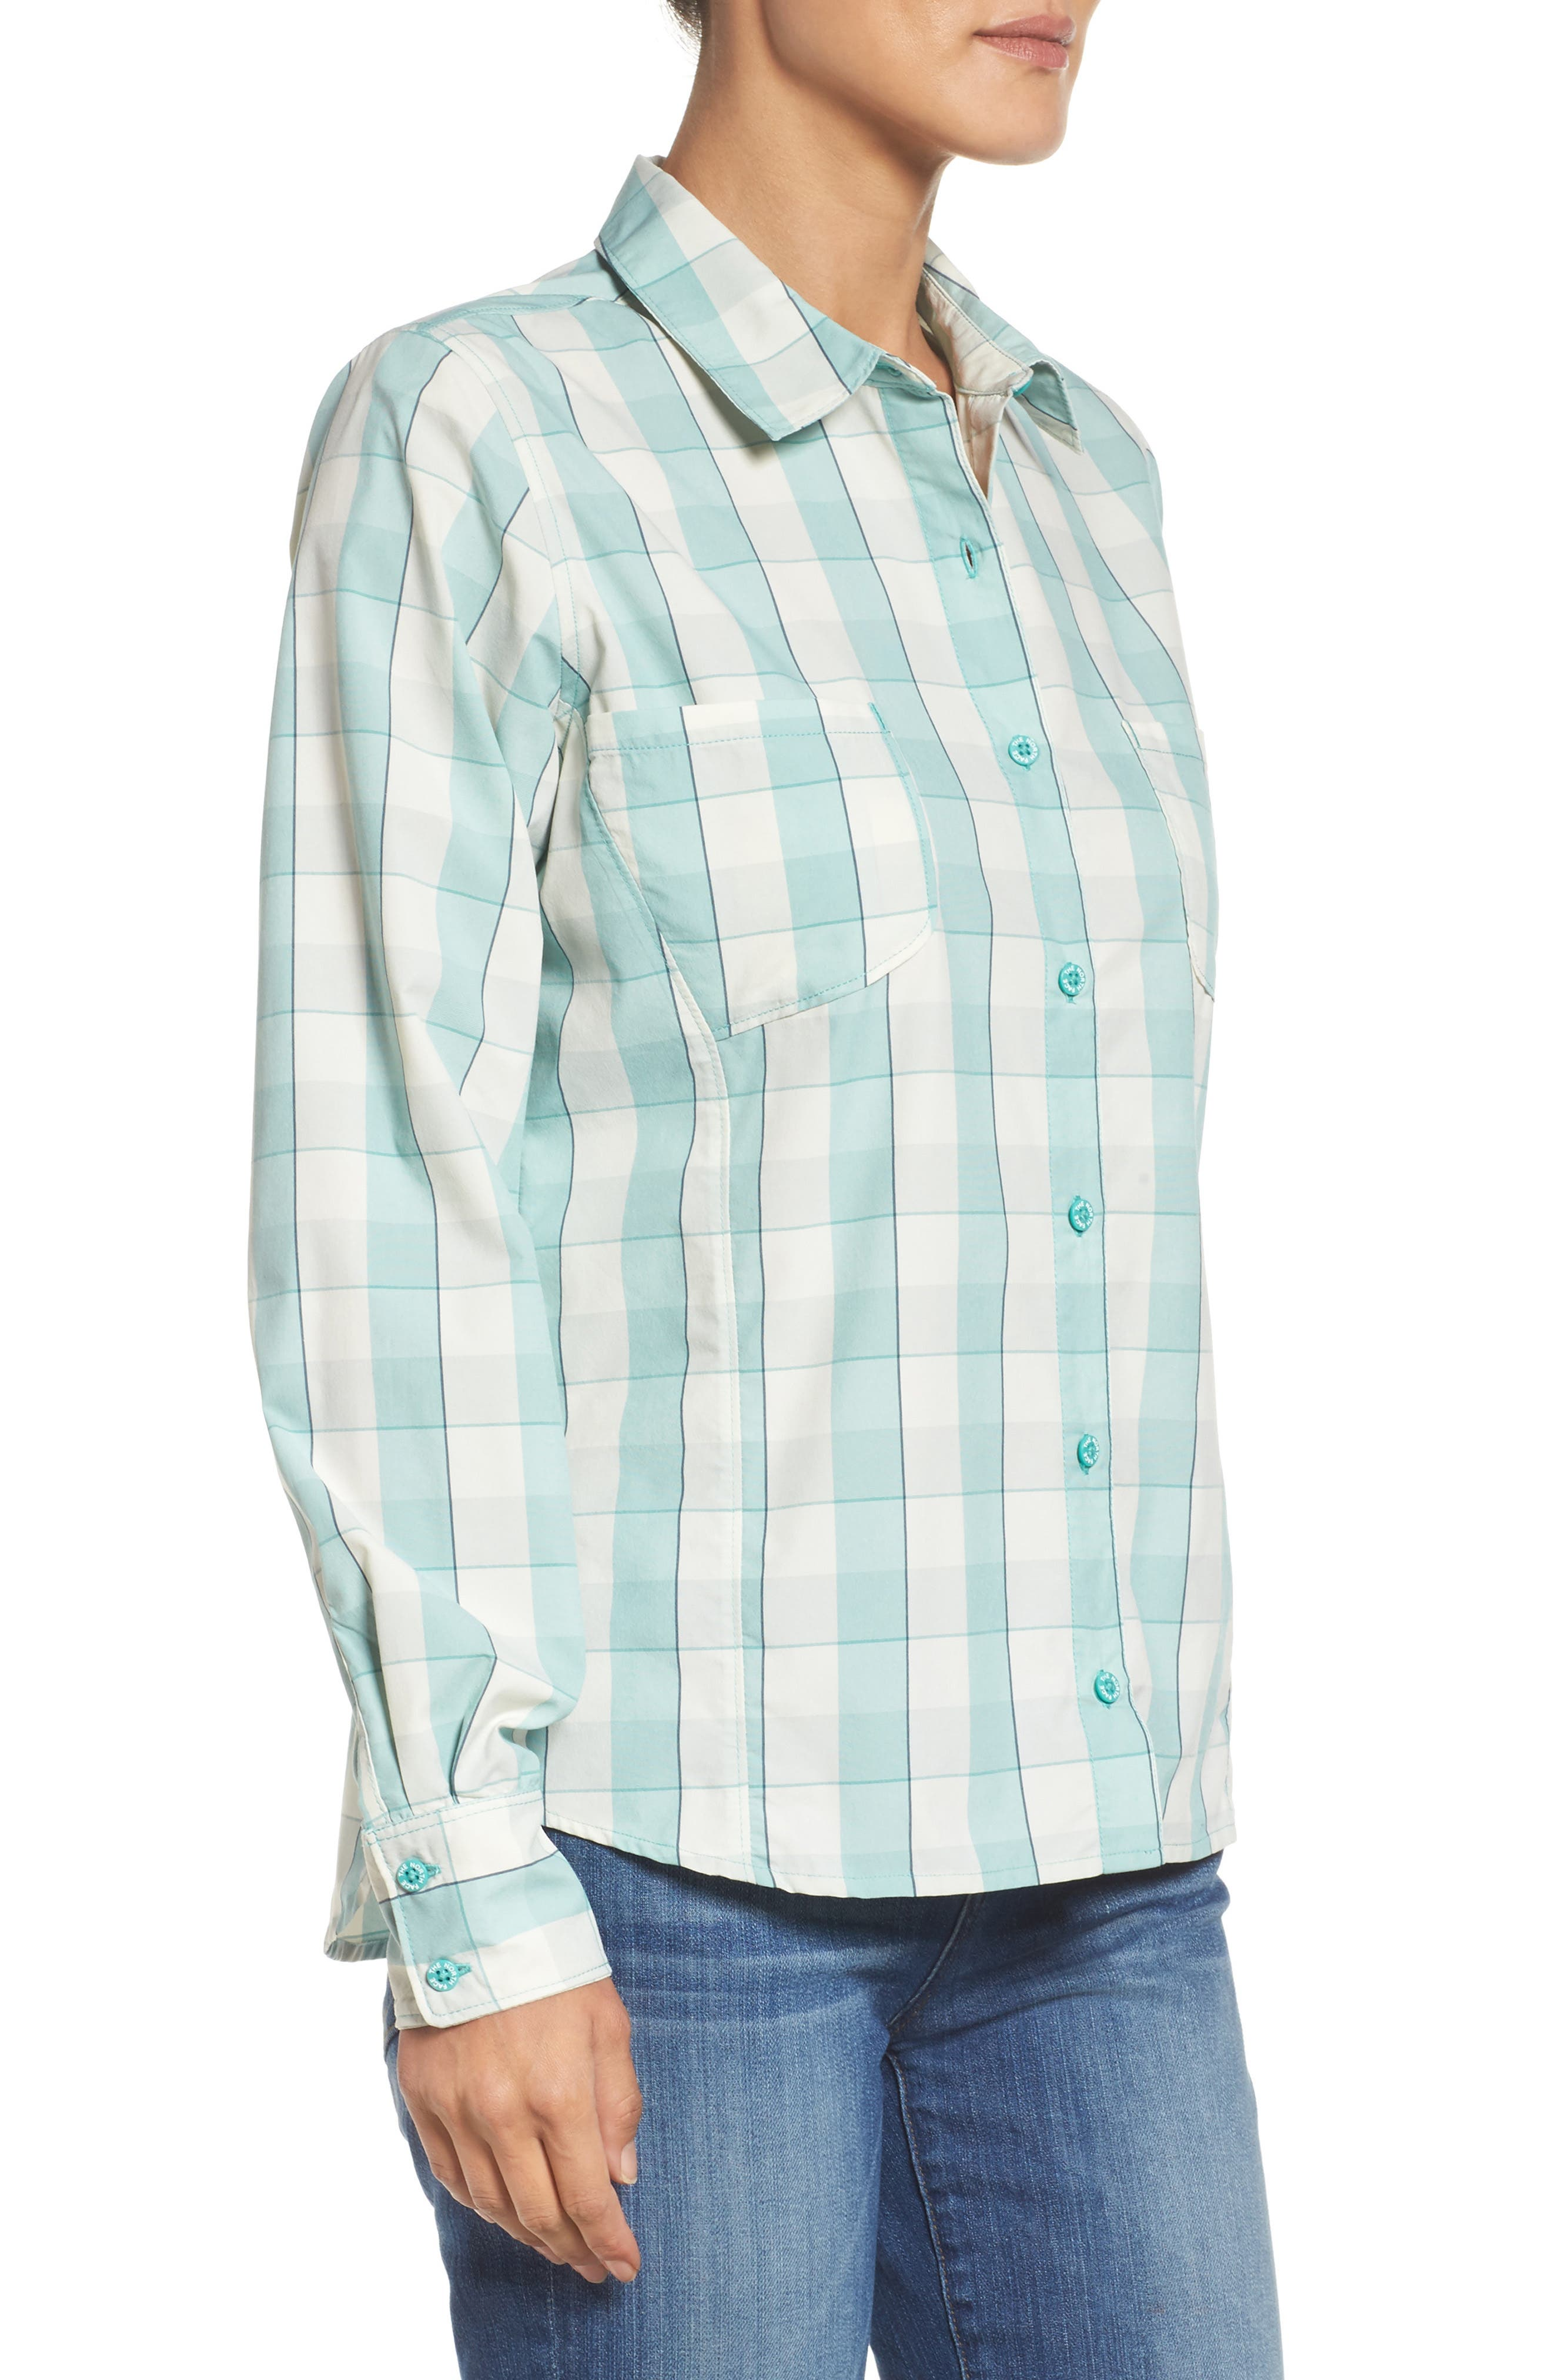 Sunblocker Twill Shirt,                             Alternate thumbnail 3, color,                             310